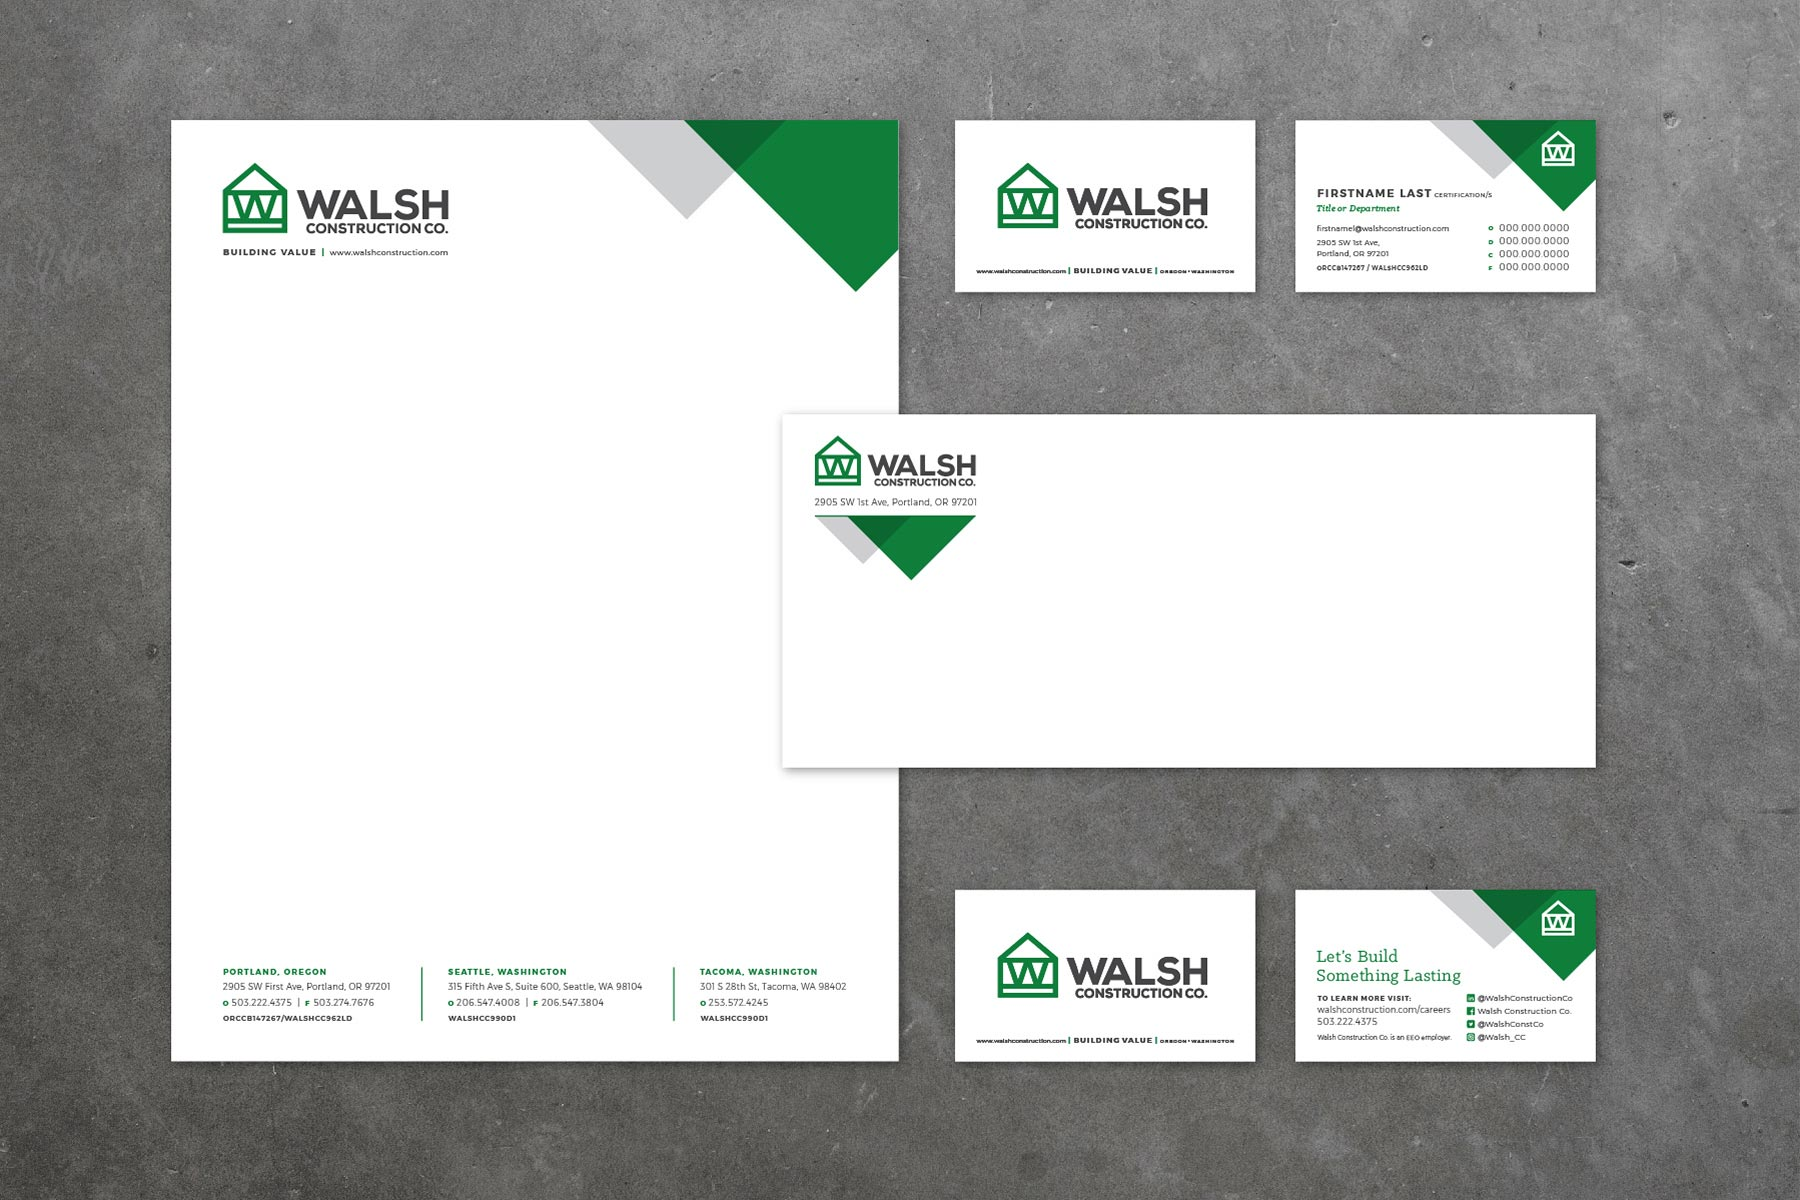 WALSH-Stationery.jpg